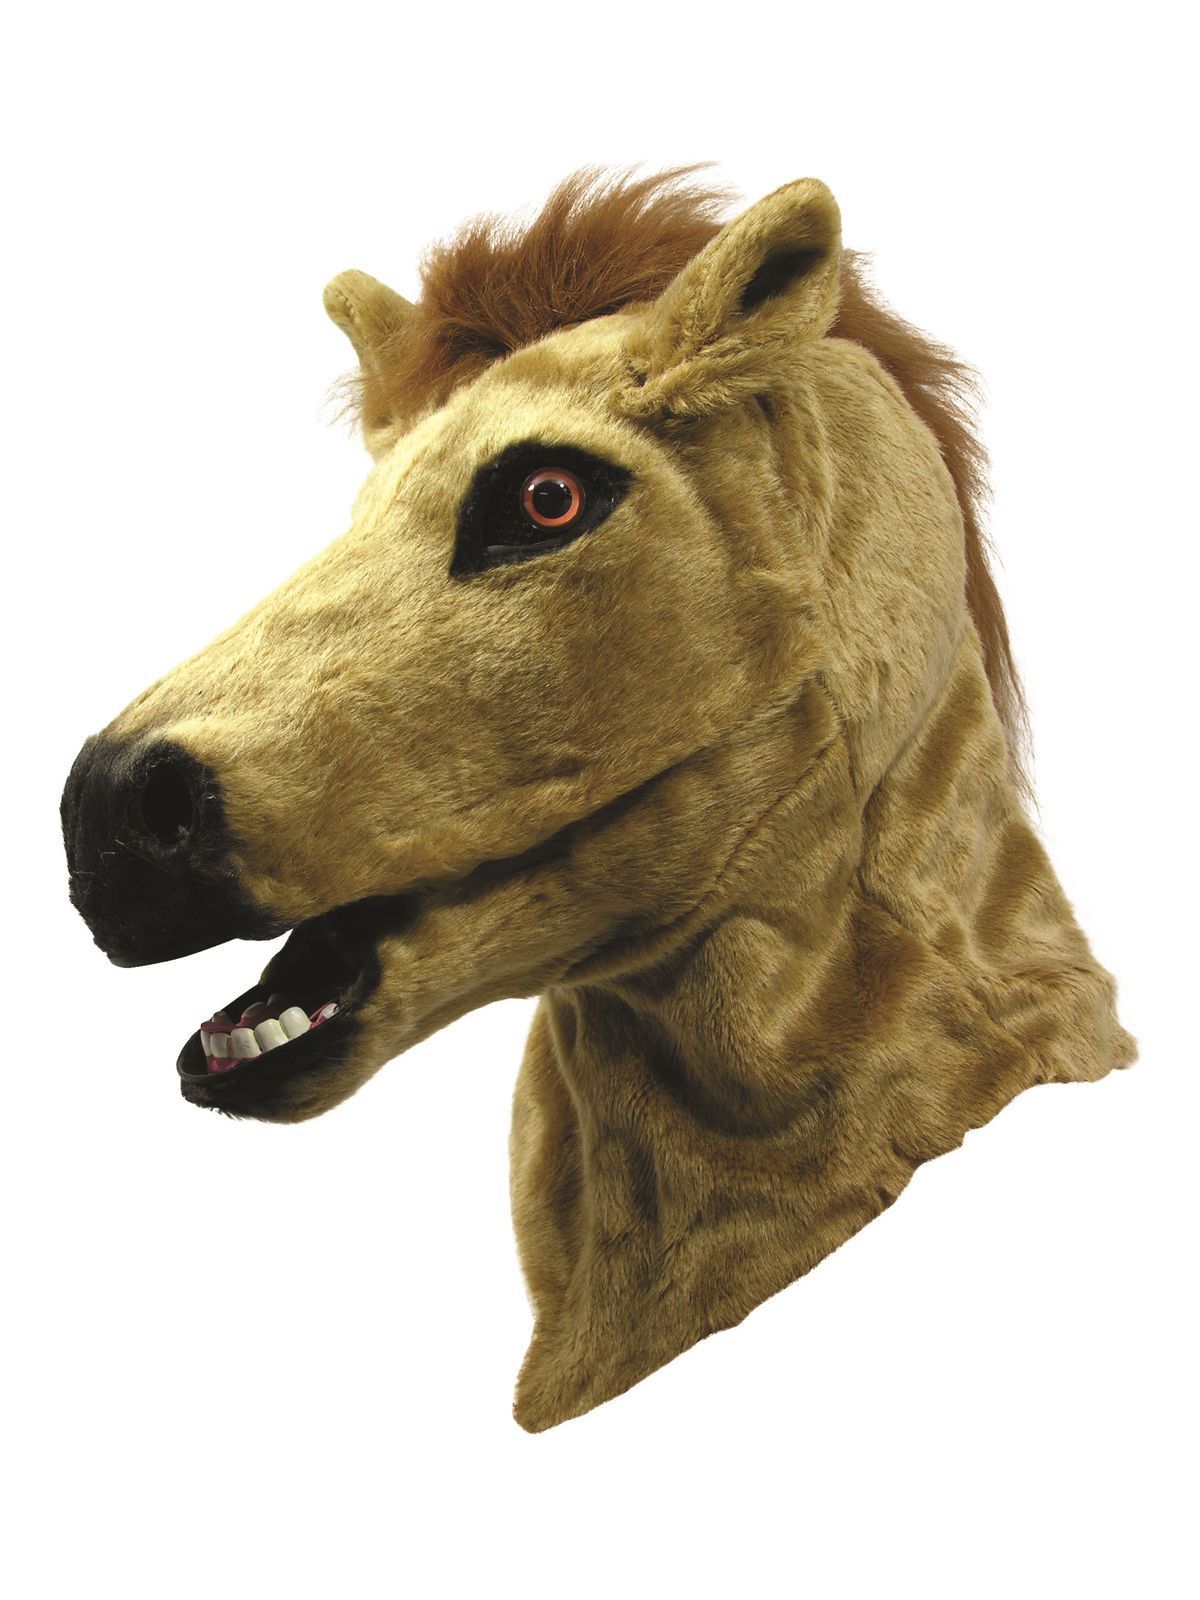 adult sized moving mouth horse mask with neck halloween costume accessory